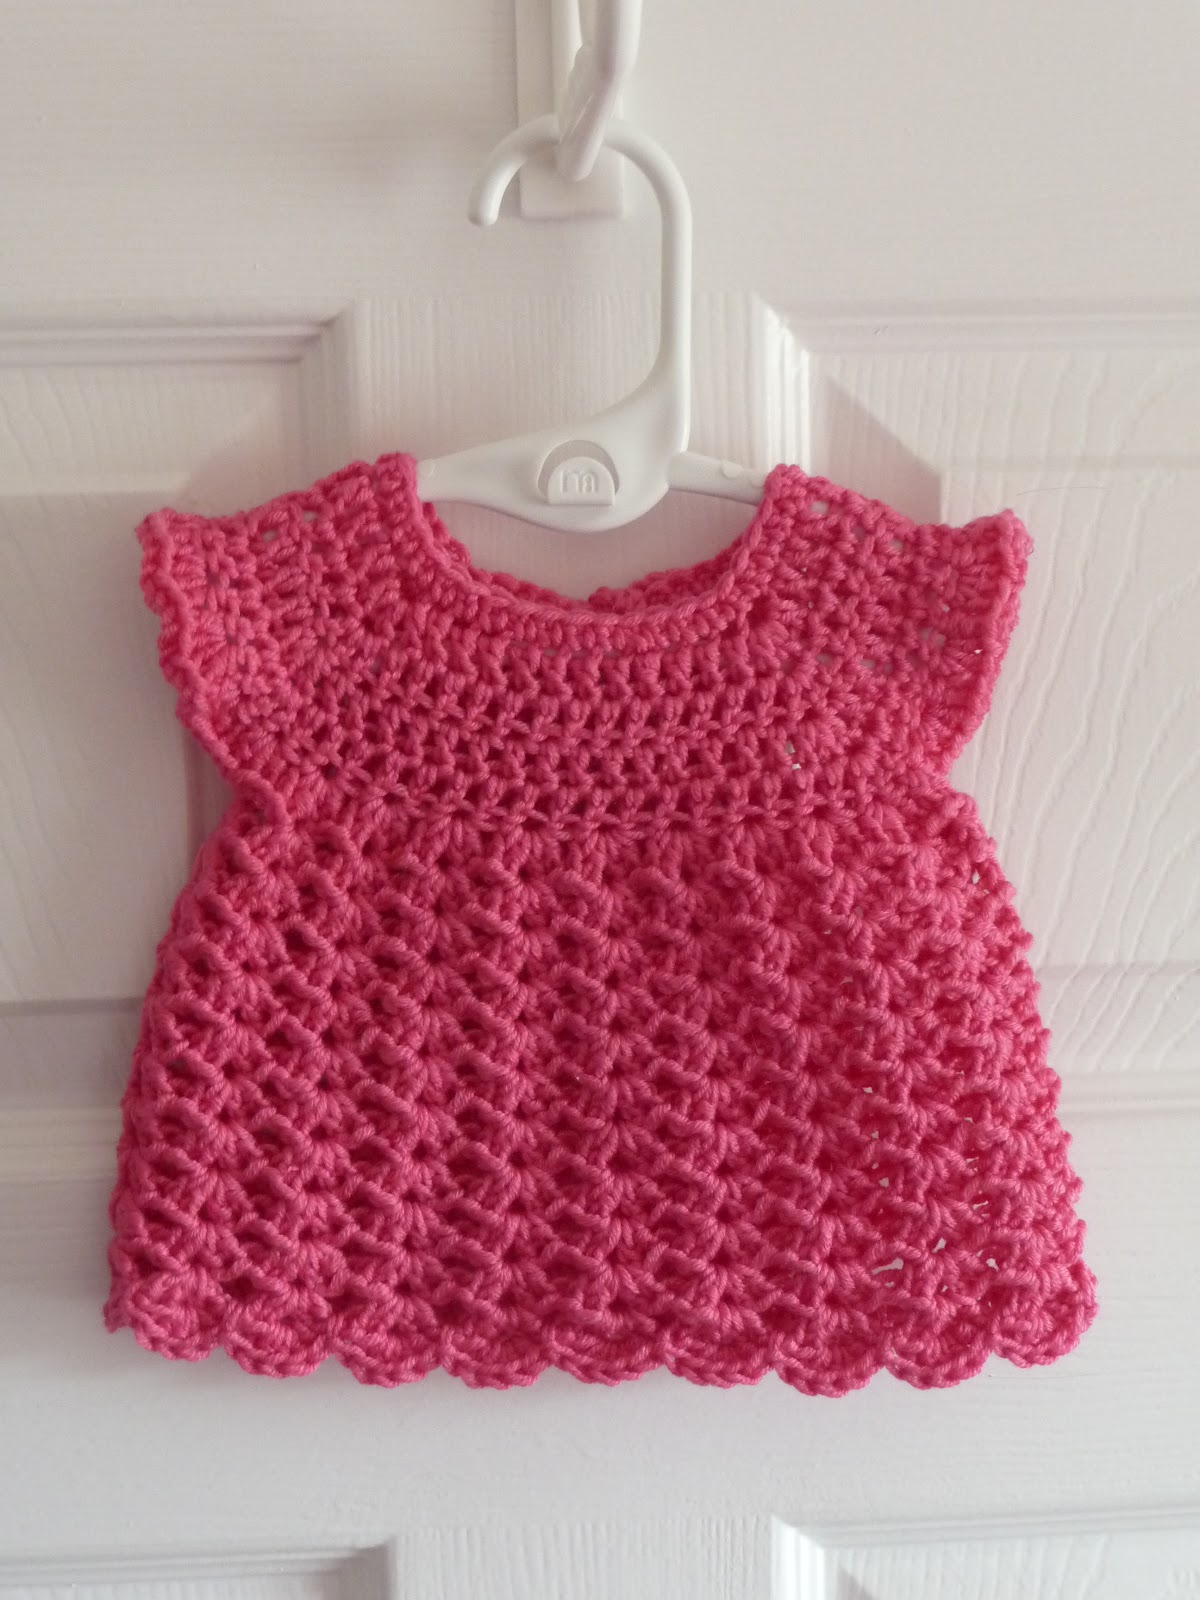 Dinky crochet baby dress